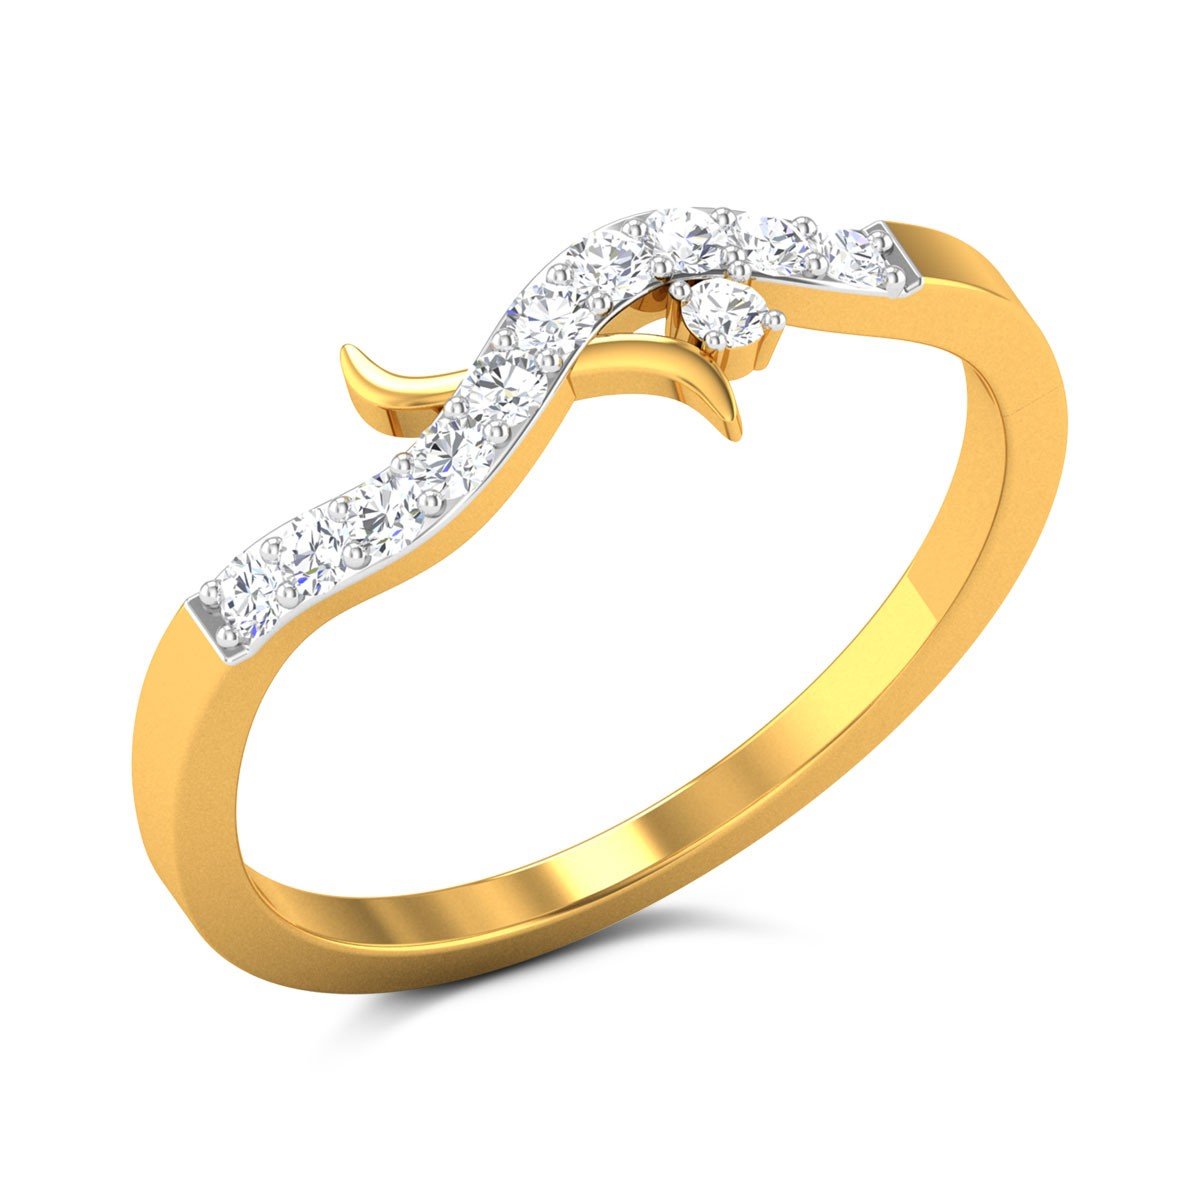 Buy Oksana Diamond Ring in 1.79 Grams Gold Online